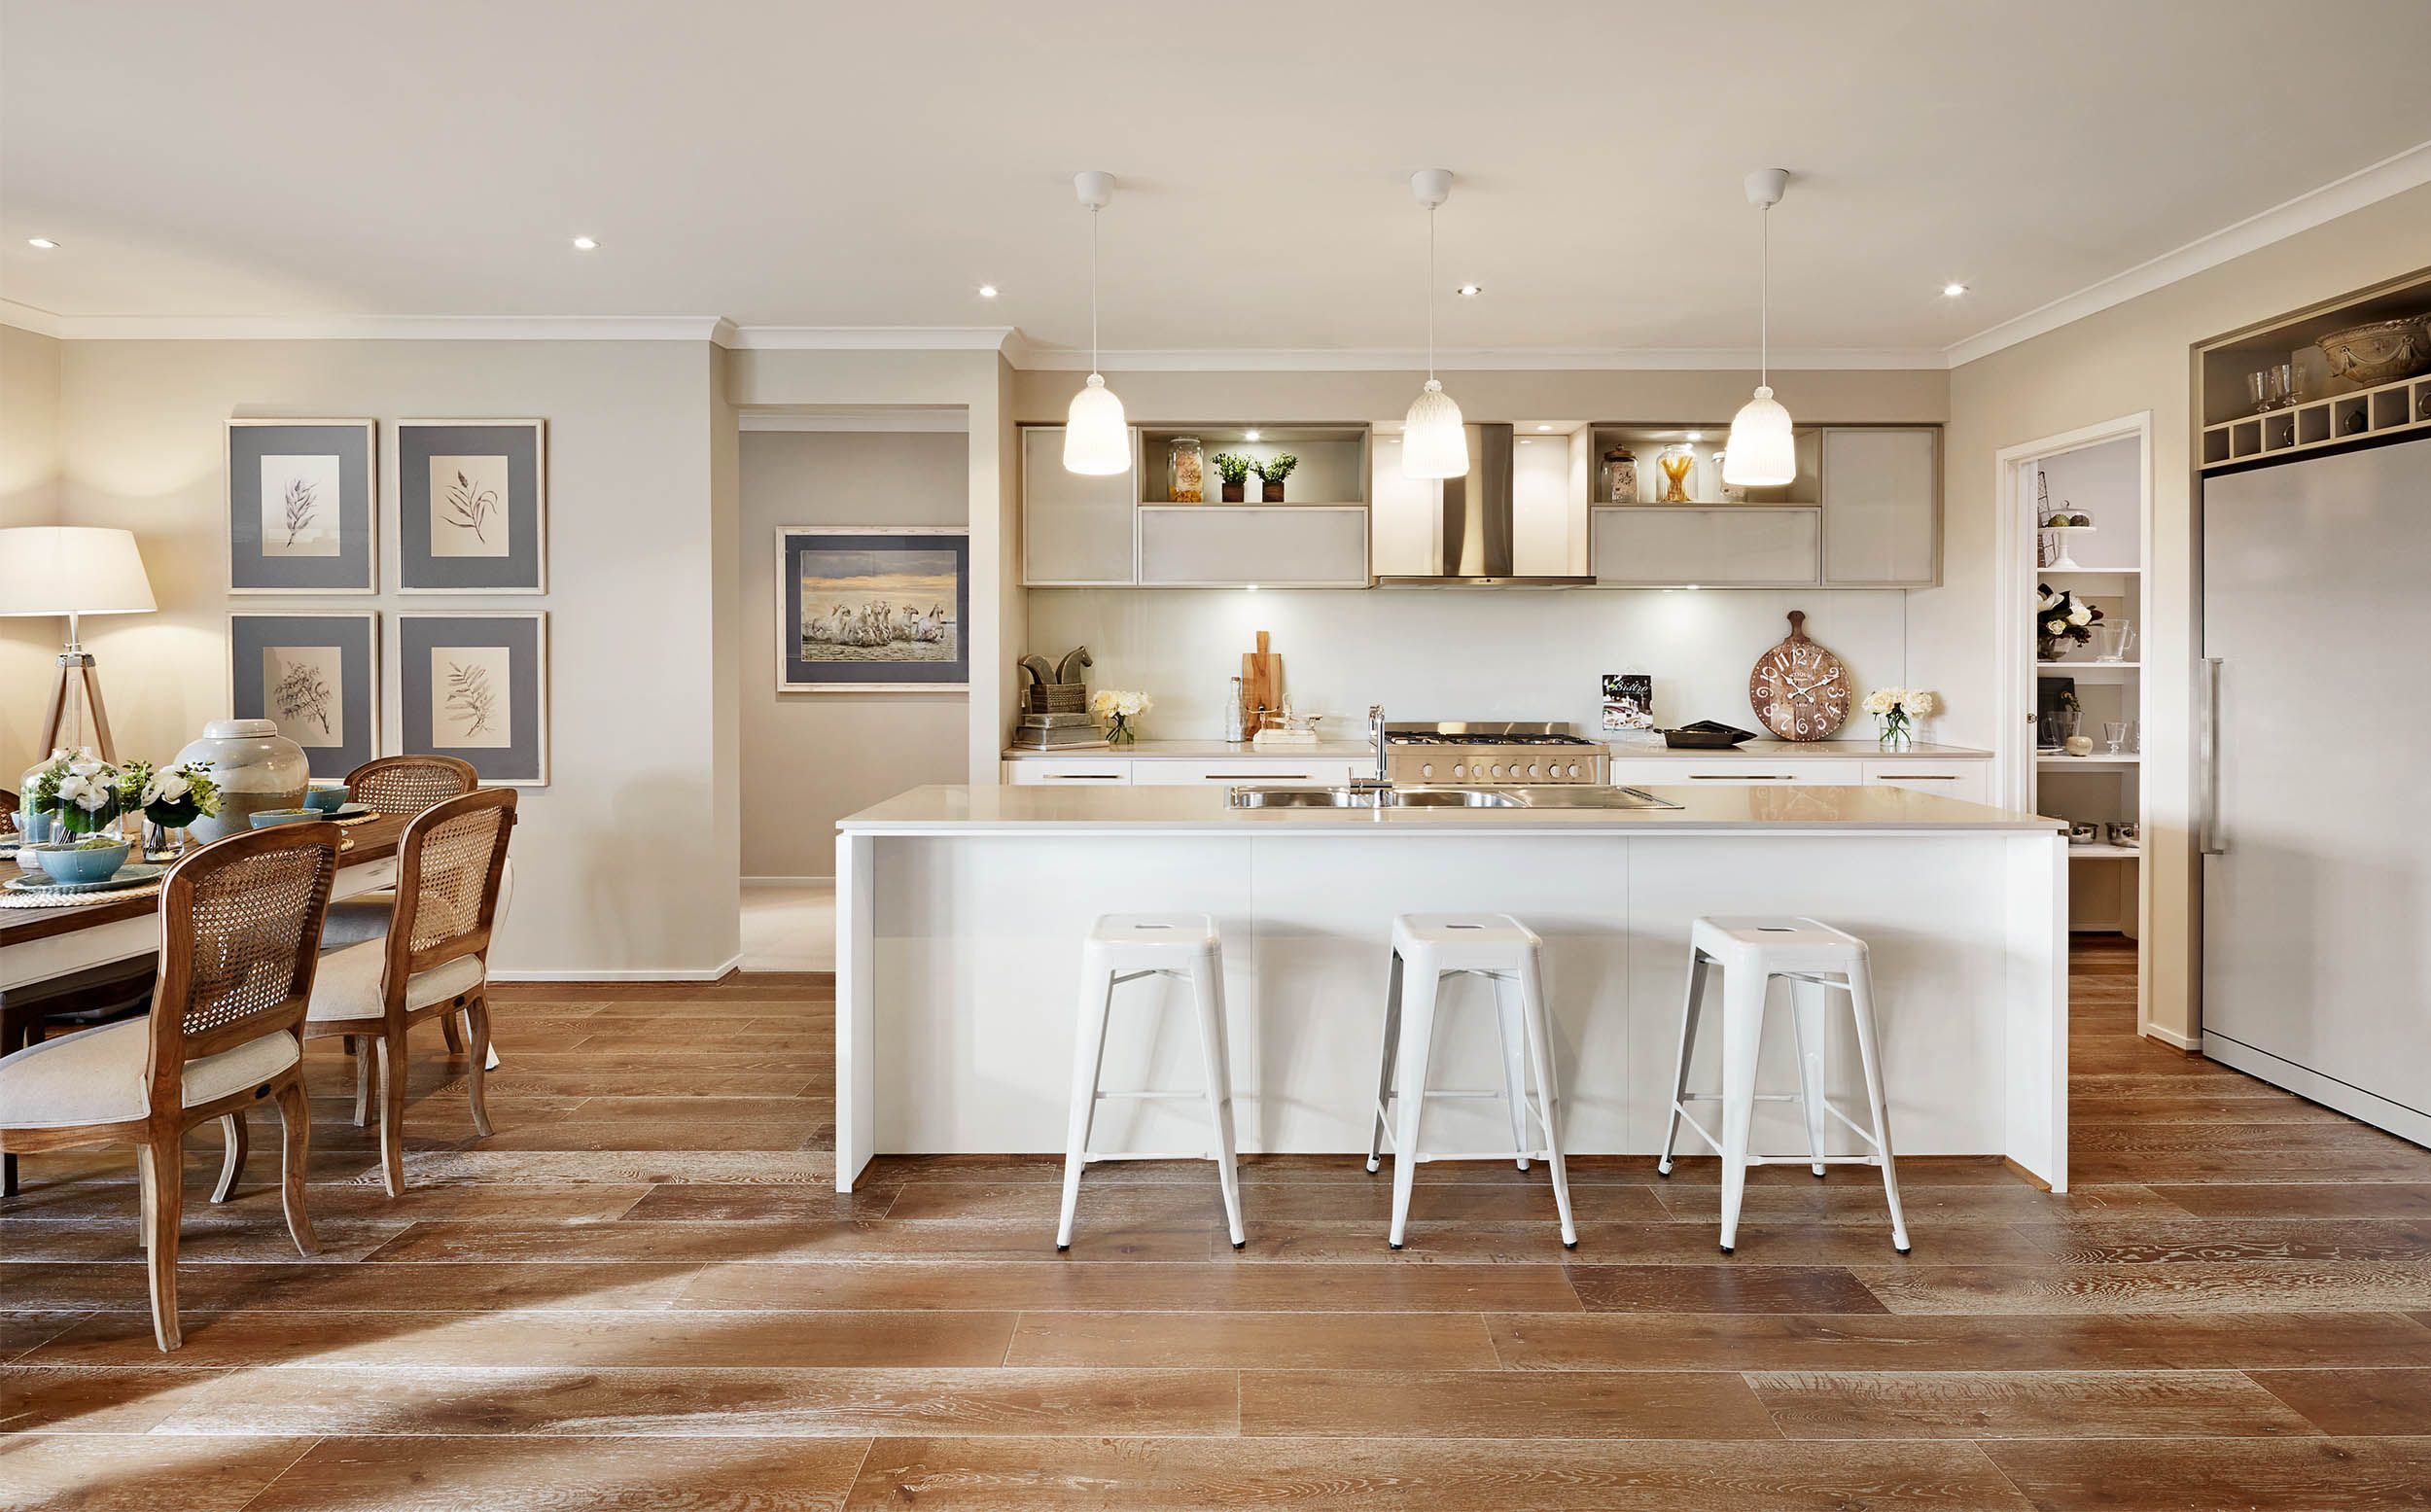 Carlisle Homes: Embleton 29 - Featured at Rosenthal Estate | Kitchen ...